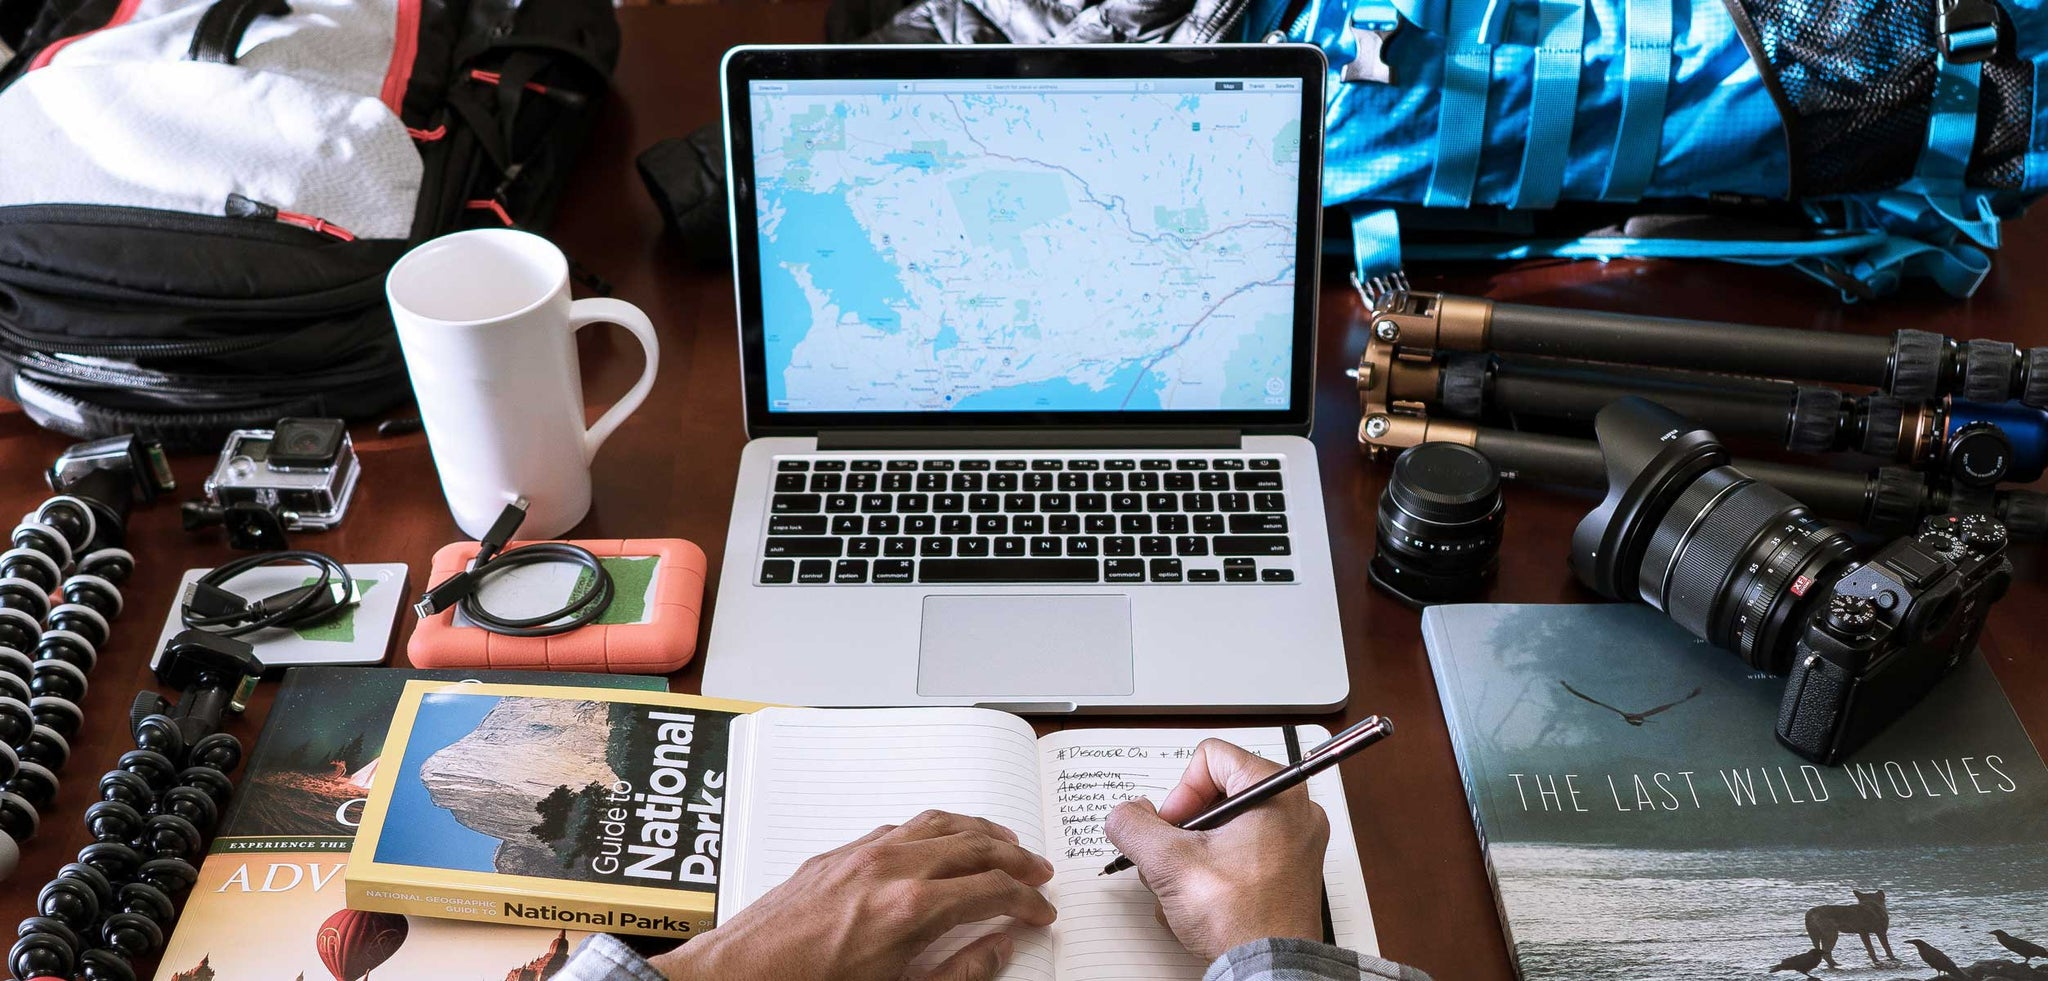 Preparing for travel - man behind a laptop and a map